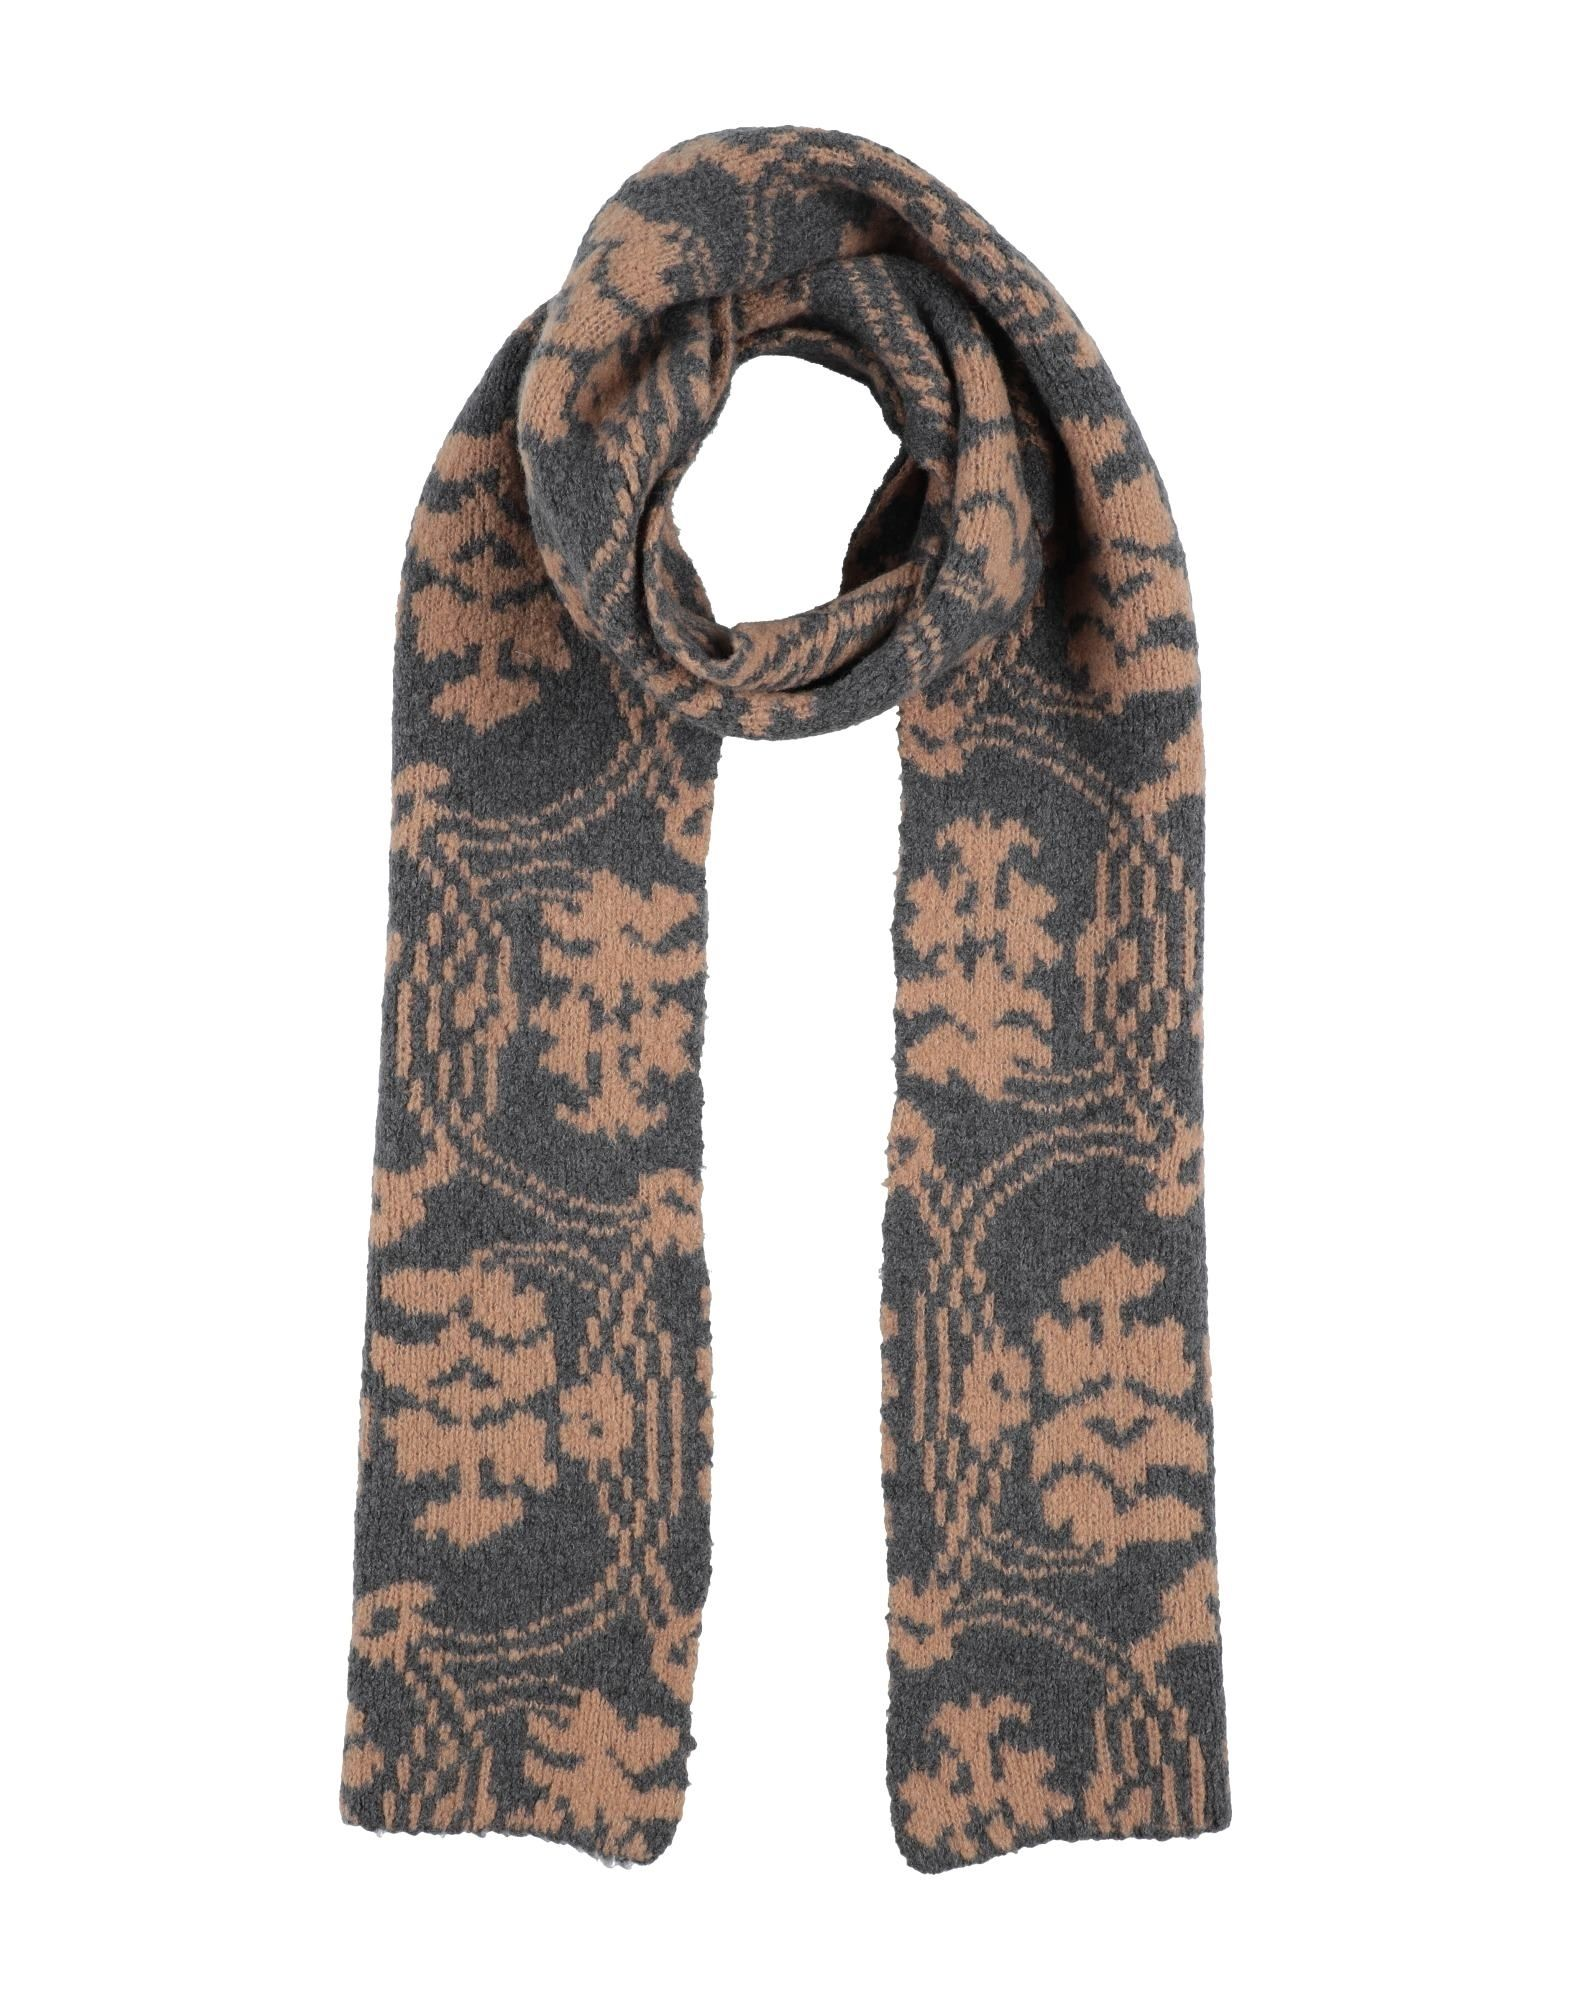 DRIES VAN NOTEN Scarves - Item 46702113